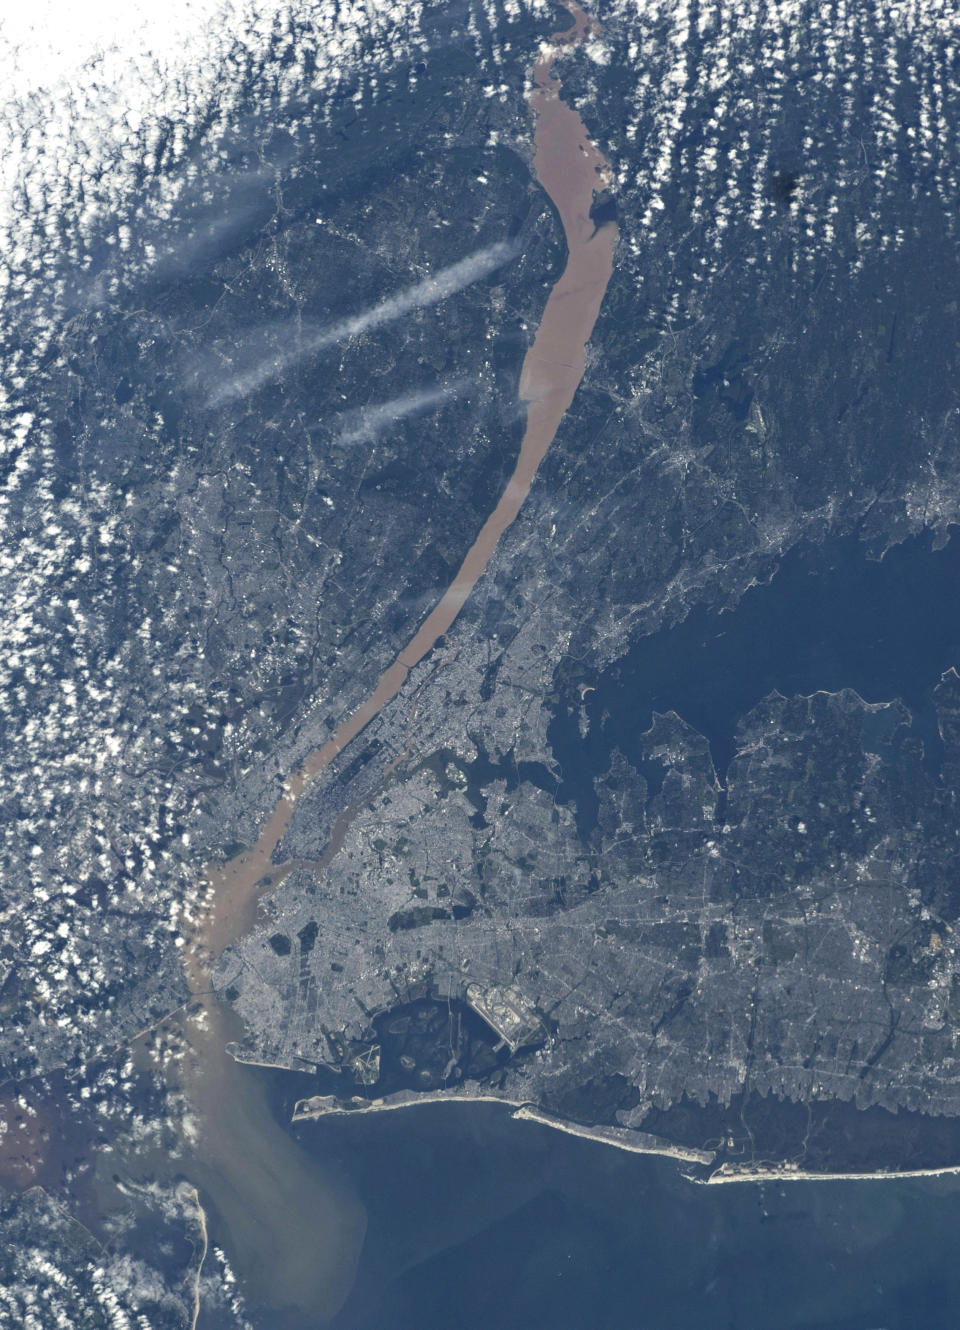 An aerial image of New York City captured by one of the Expedition 28 crew members. Photo credit: Nasa